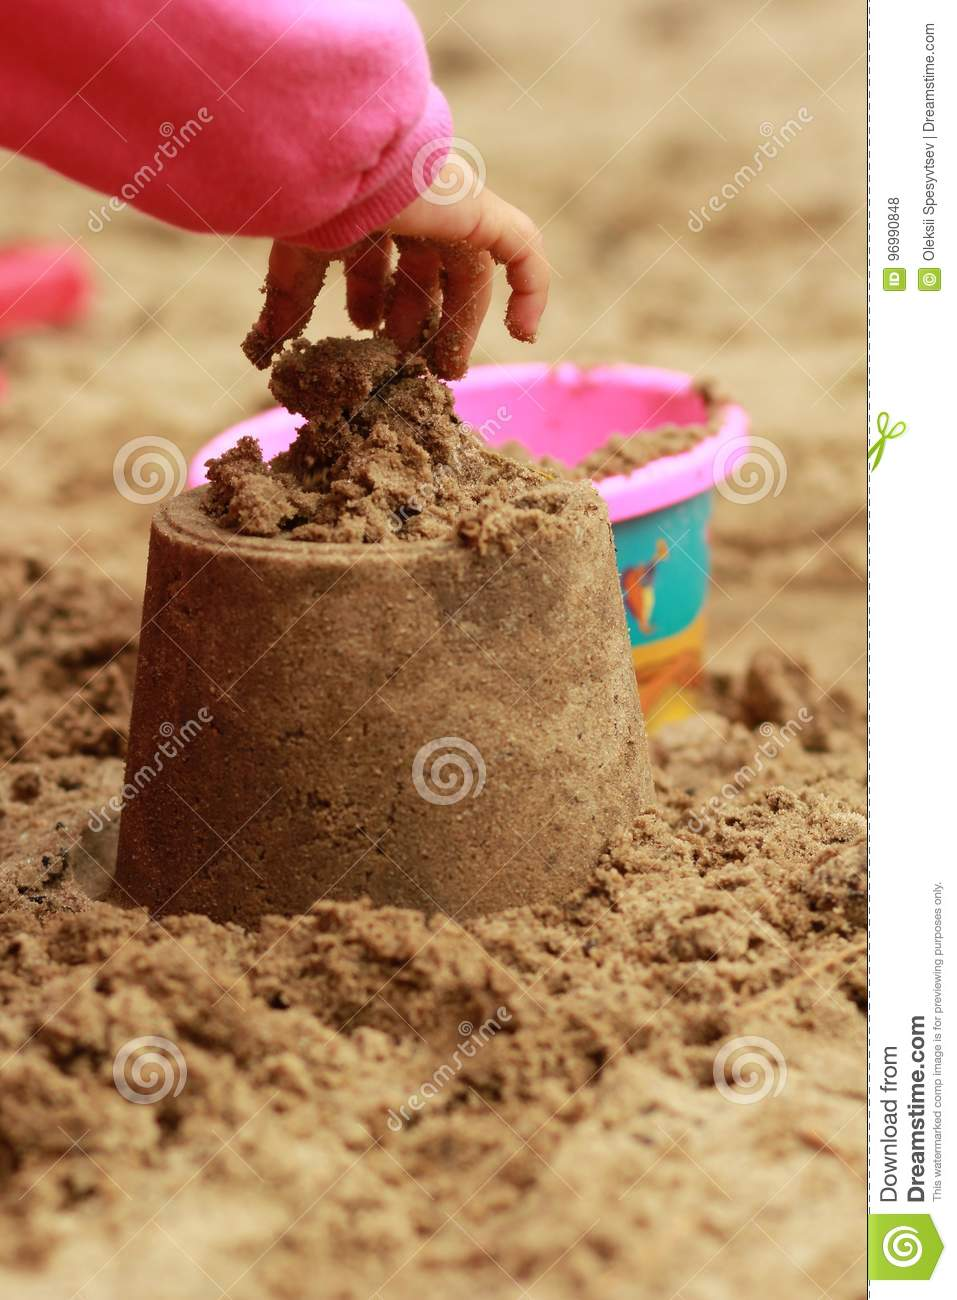 A Child S Hand Making A Sand Castle In The Sandbox Sand Therapy Through Playing Stock Photo Image Of Close Preschool 96990848